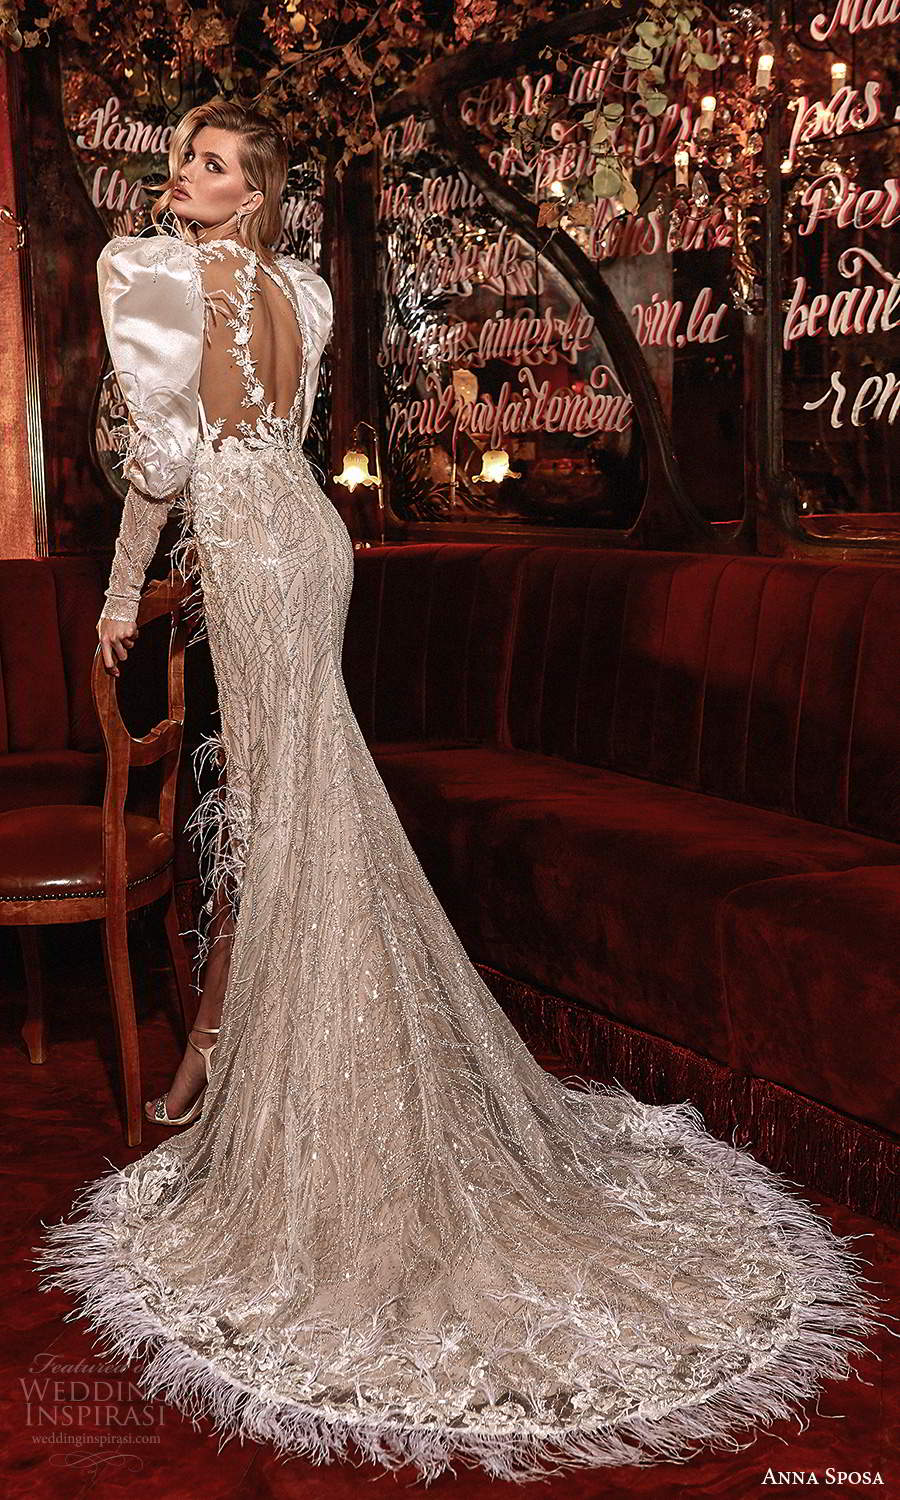 anna sposa 2021 couture bridal long puff sleeves plunging neckline fully embellished sheath wedding dress slit skirt chapel train (4) bv